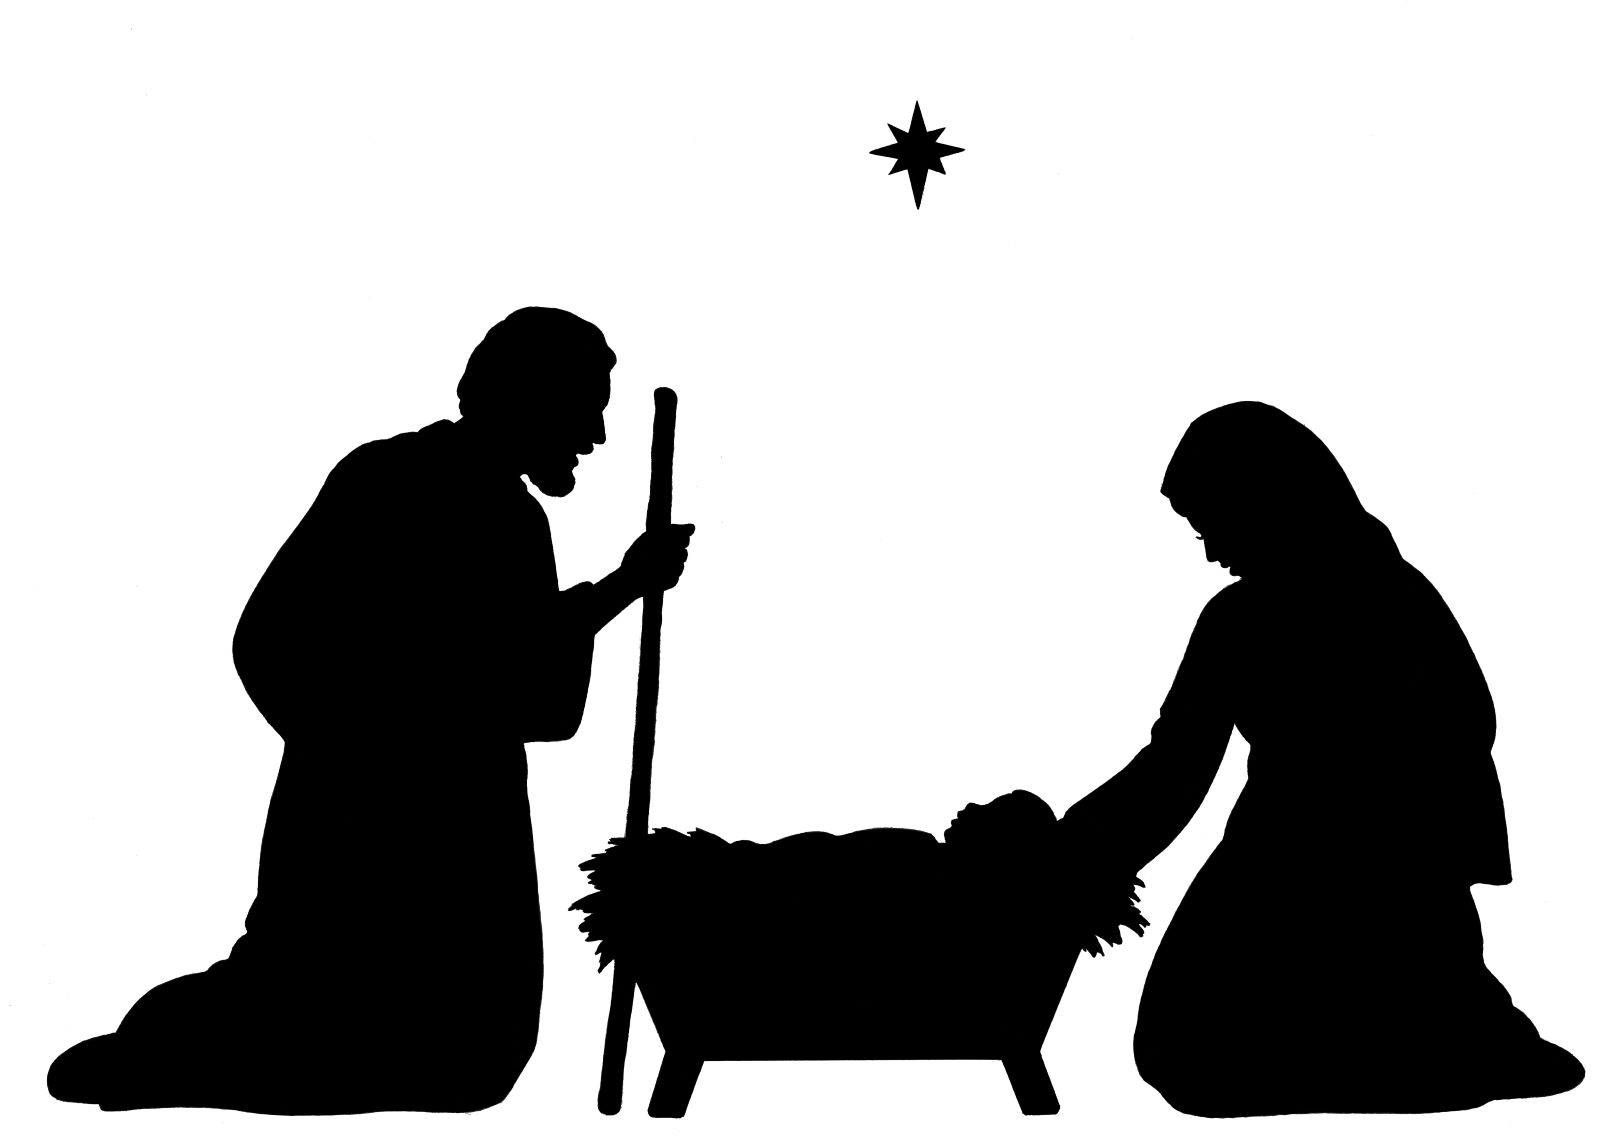 nativity scene silhouette clipart at getdrawings com free for rh getdrawings com nativity scene clip art free nativity scene clip art free